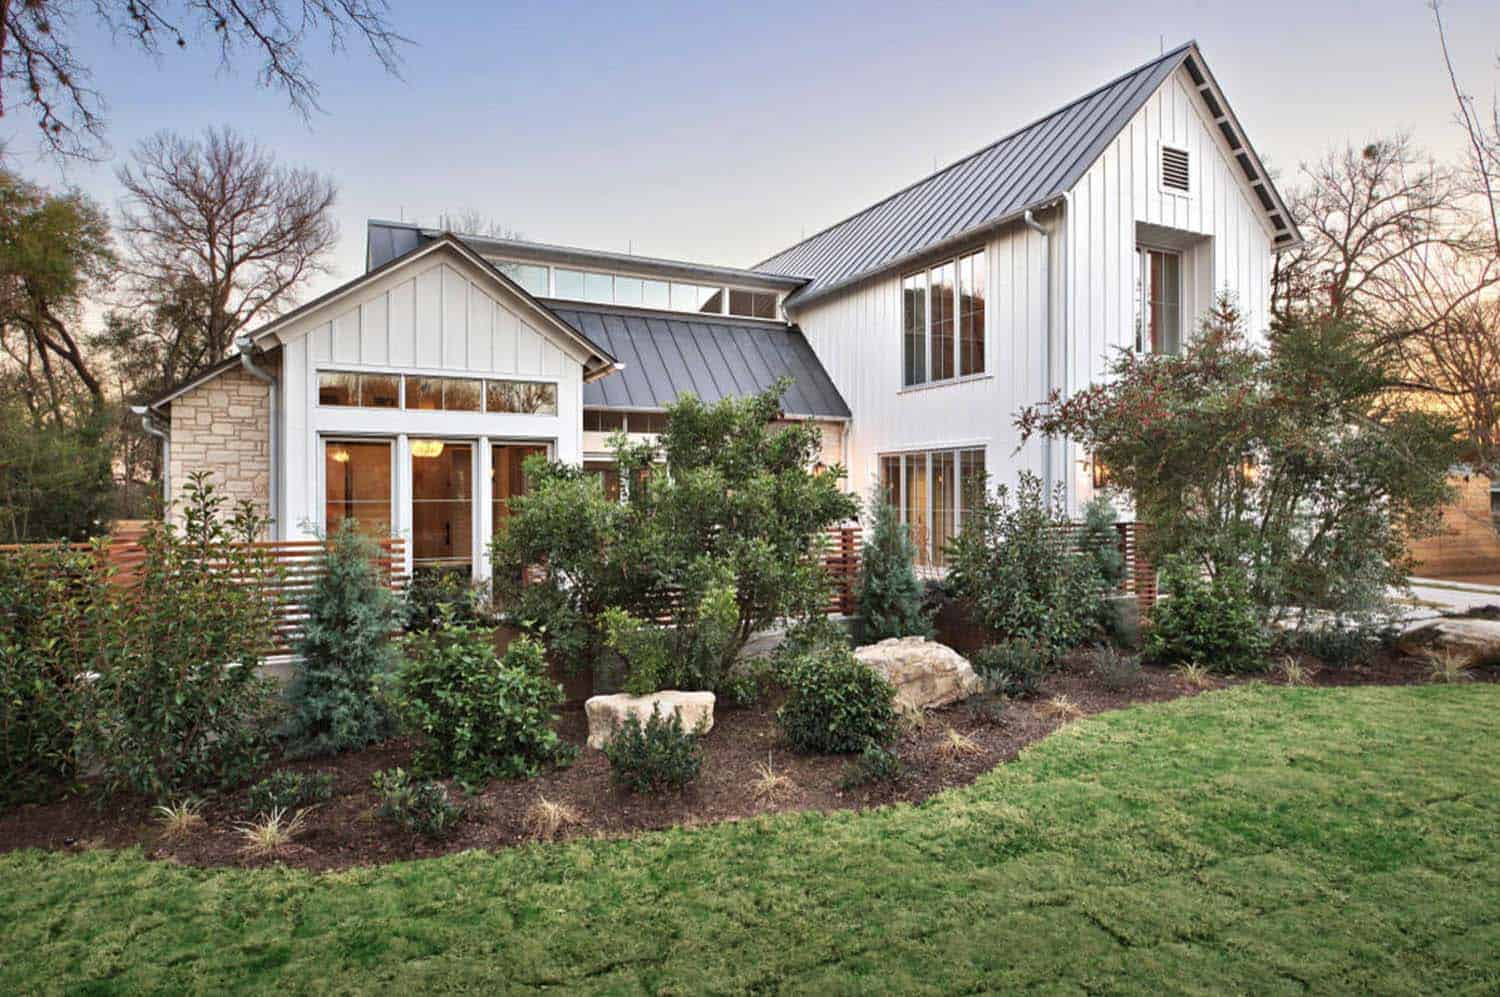 Modern Farmhouse-Tim Brown Architecture-01-1 Kindesign